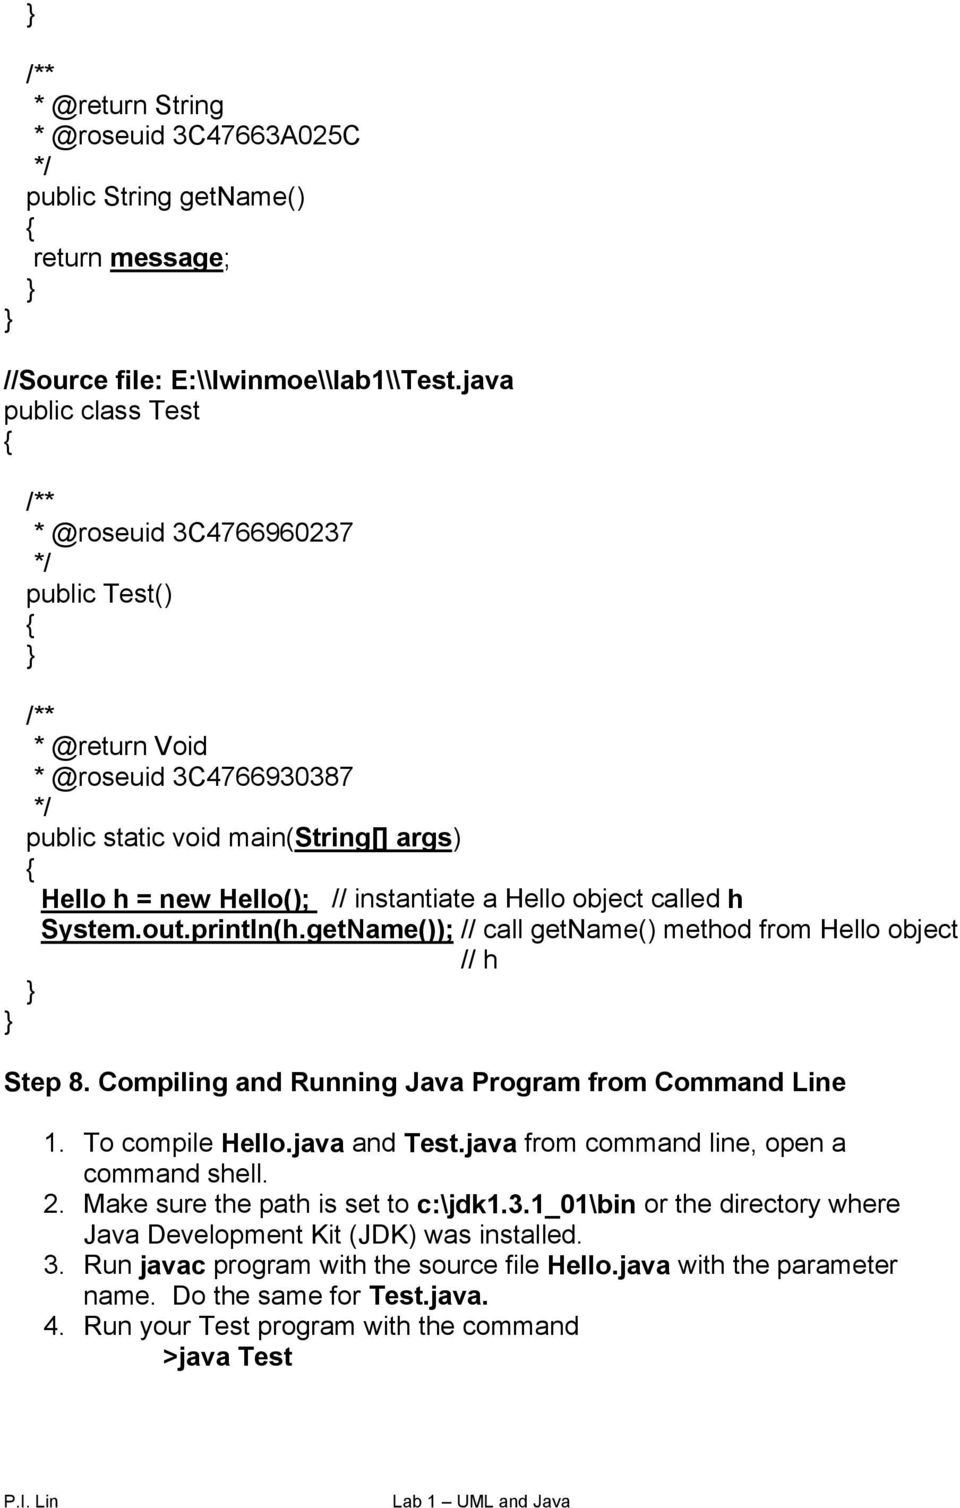 file object java